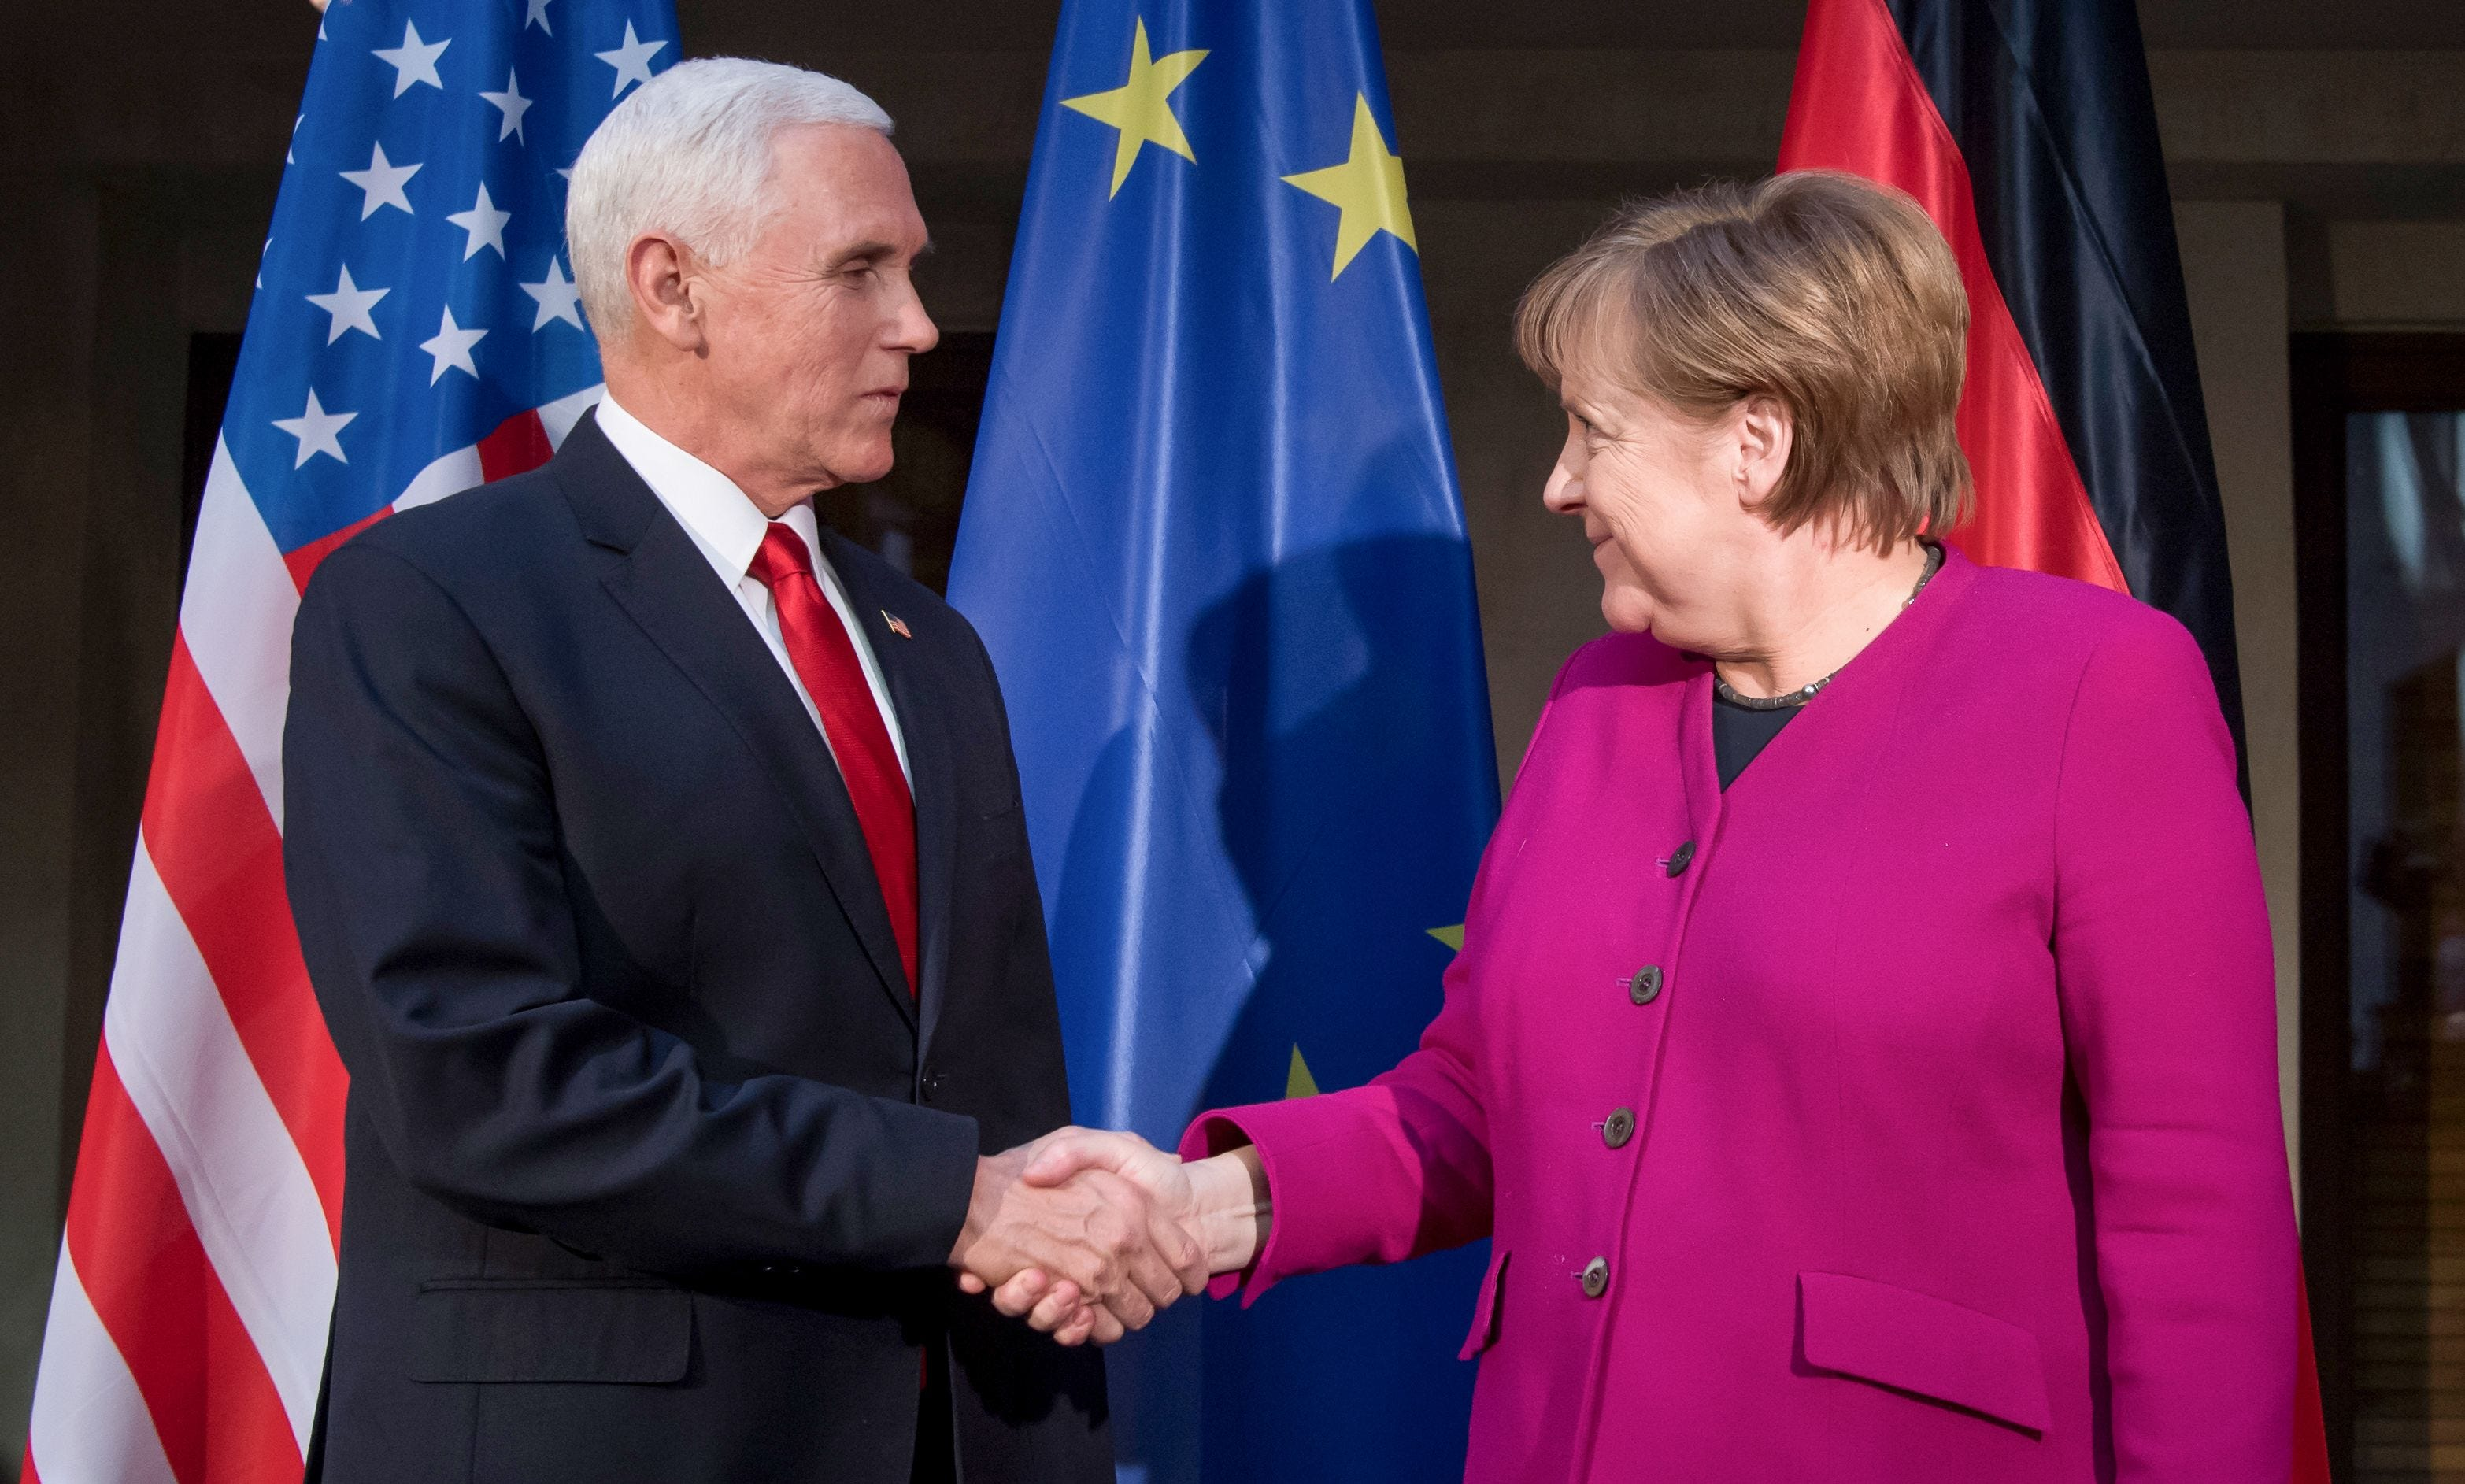 pence-and-biden-in-munich-stark-contrast-shows-how-trump-is-ruining-relations-with-europe